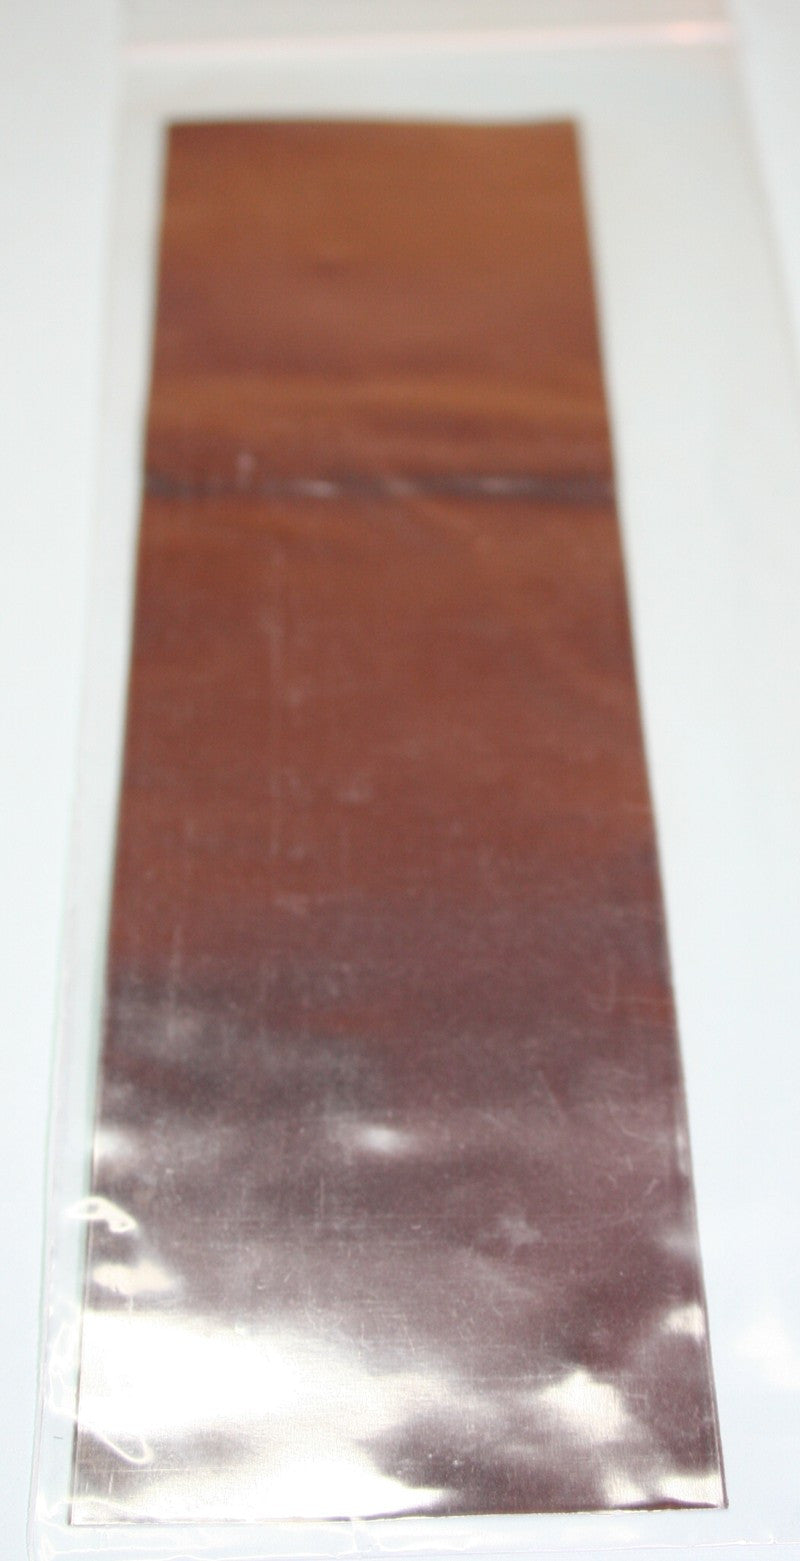 Adhesive Lead Sheet (Approx 2